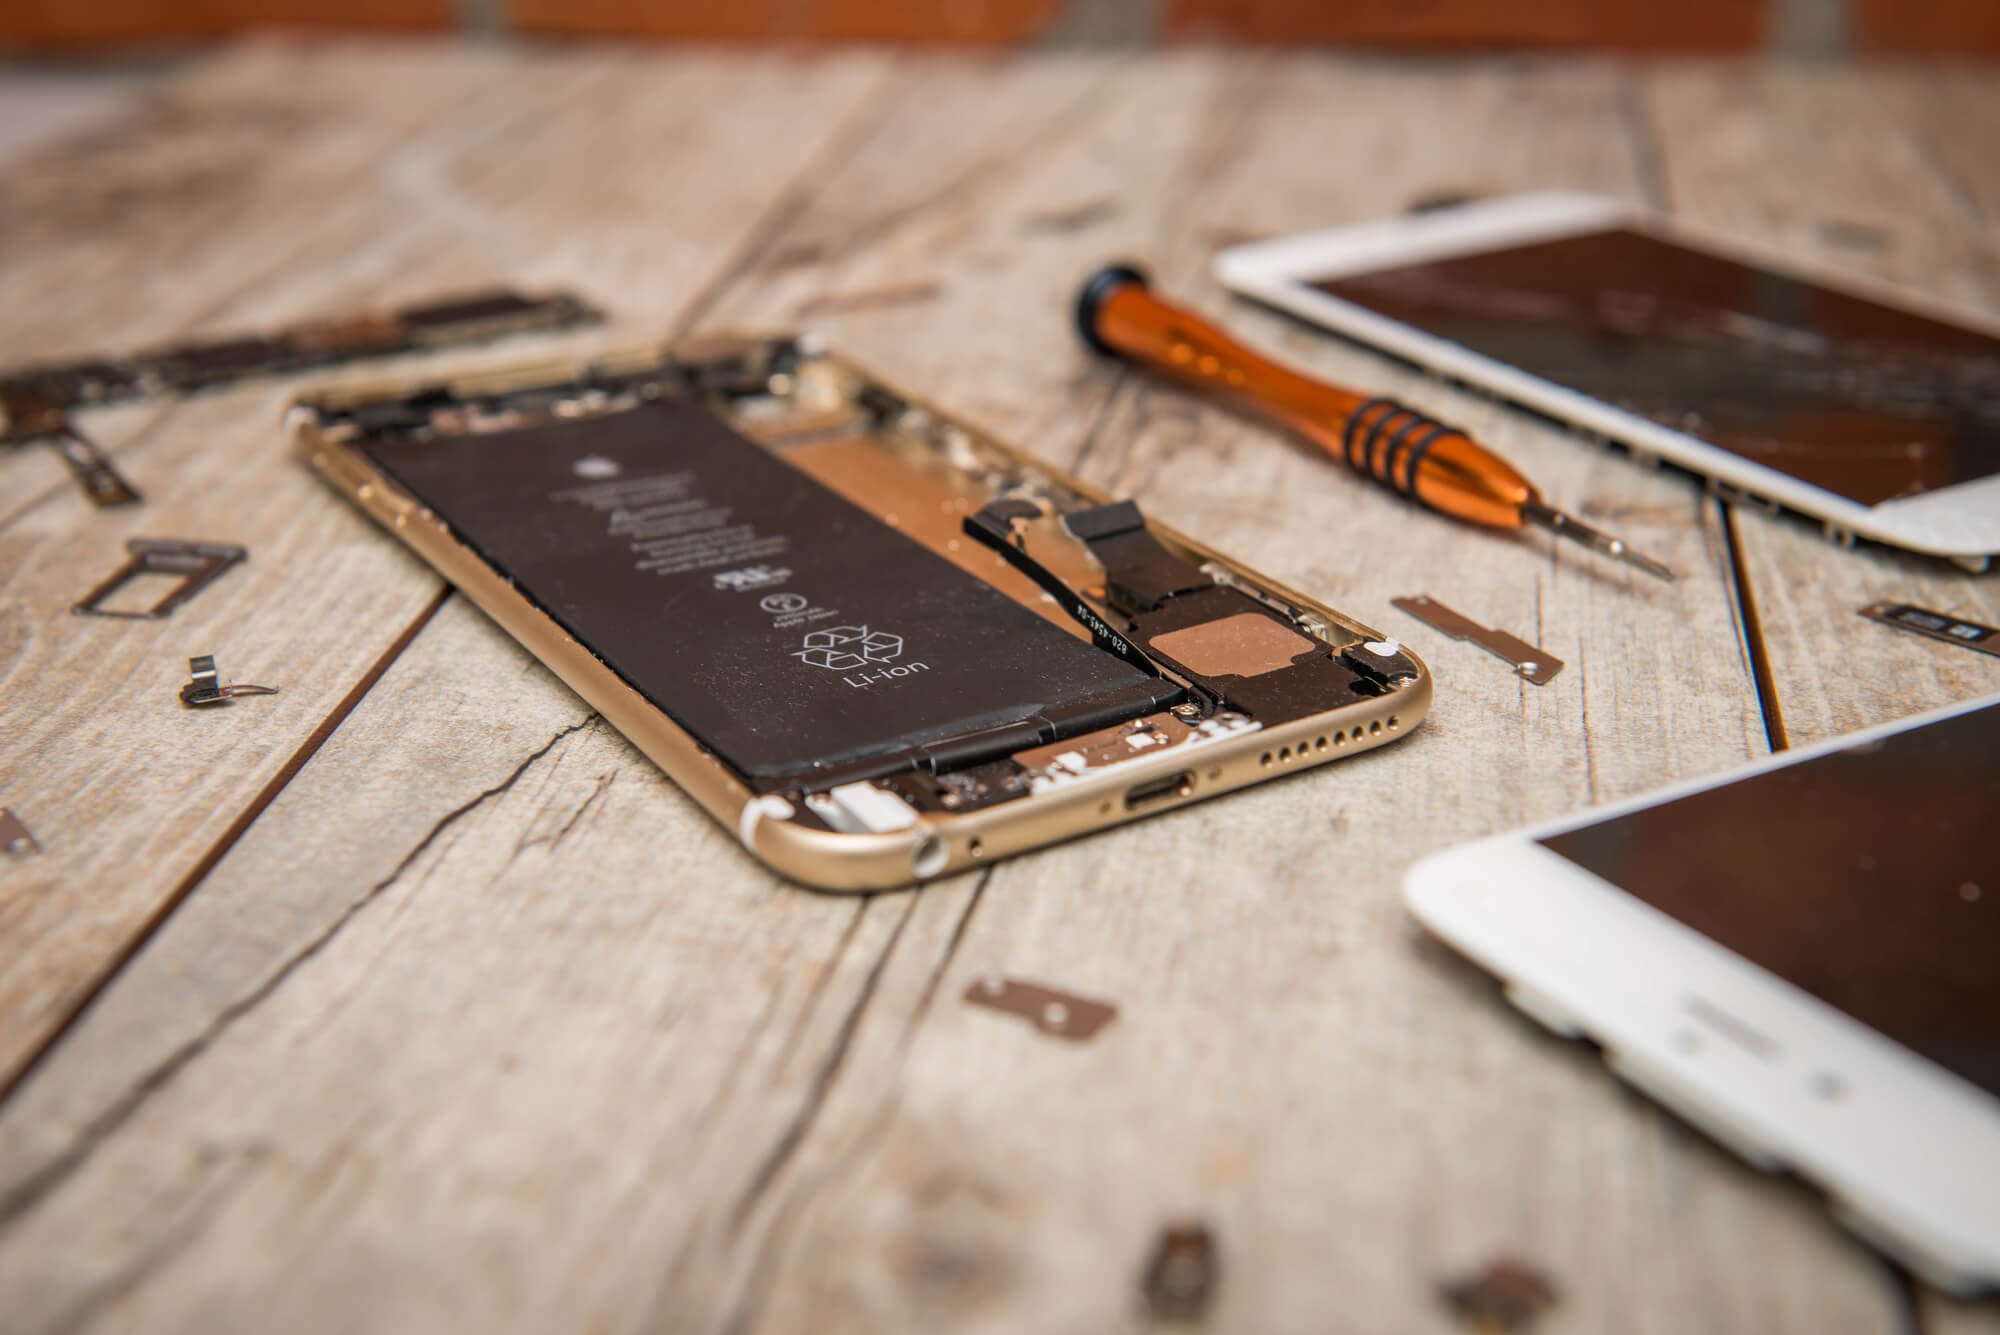 How Long Does an iPhone Battery Last?